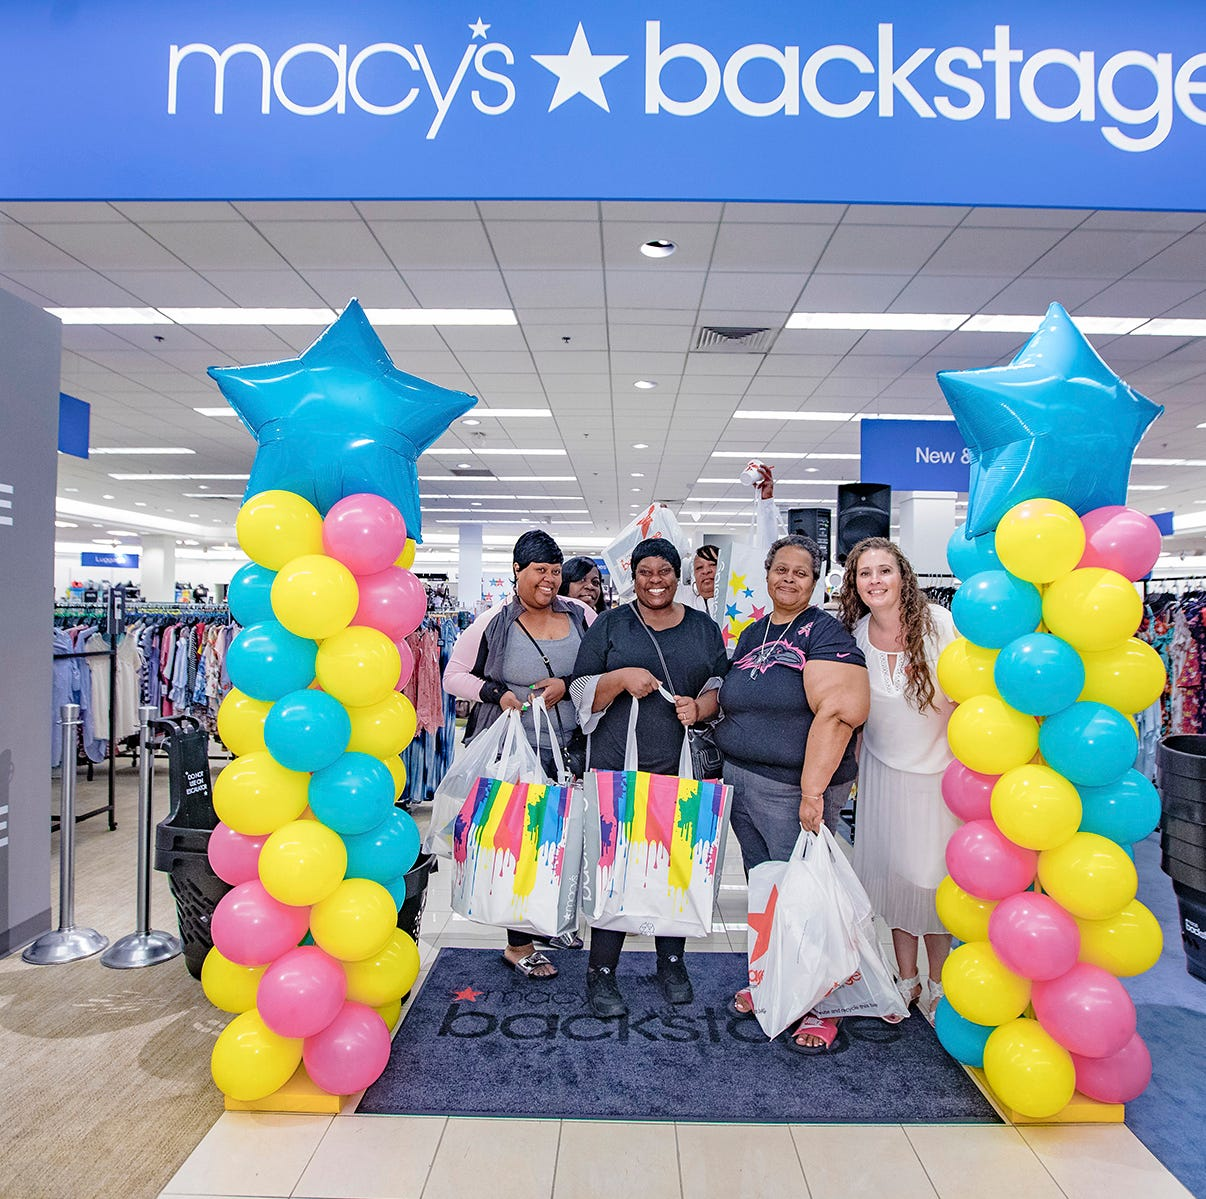 Macy's Backstage opens at Menlo Park Mall in Edison